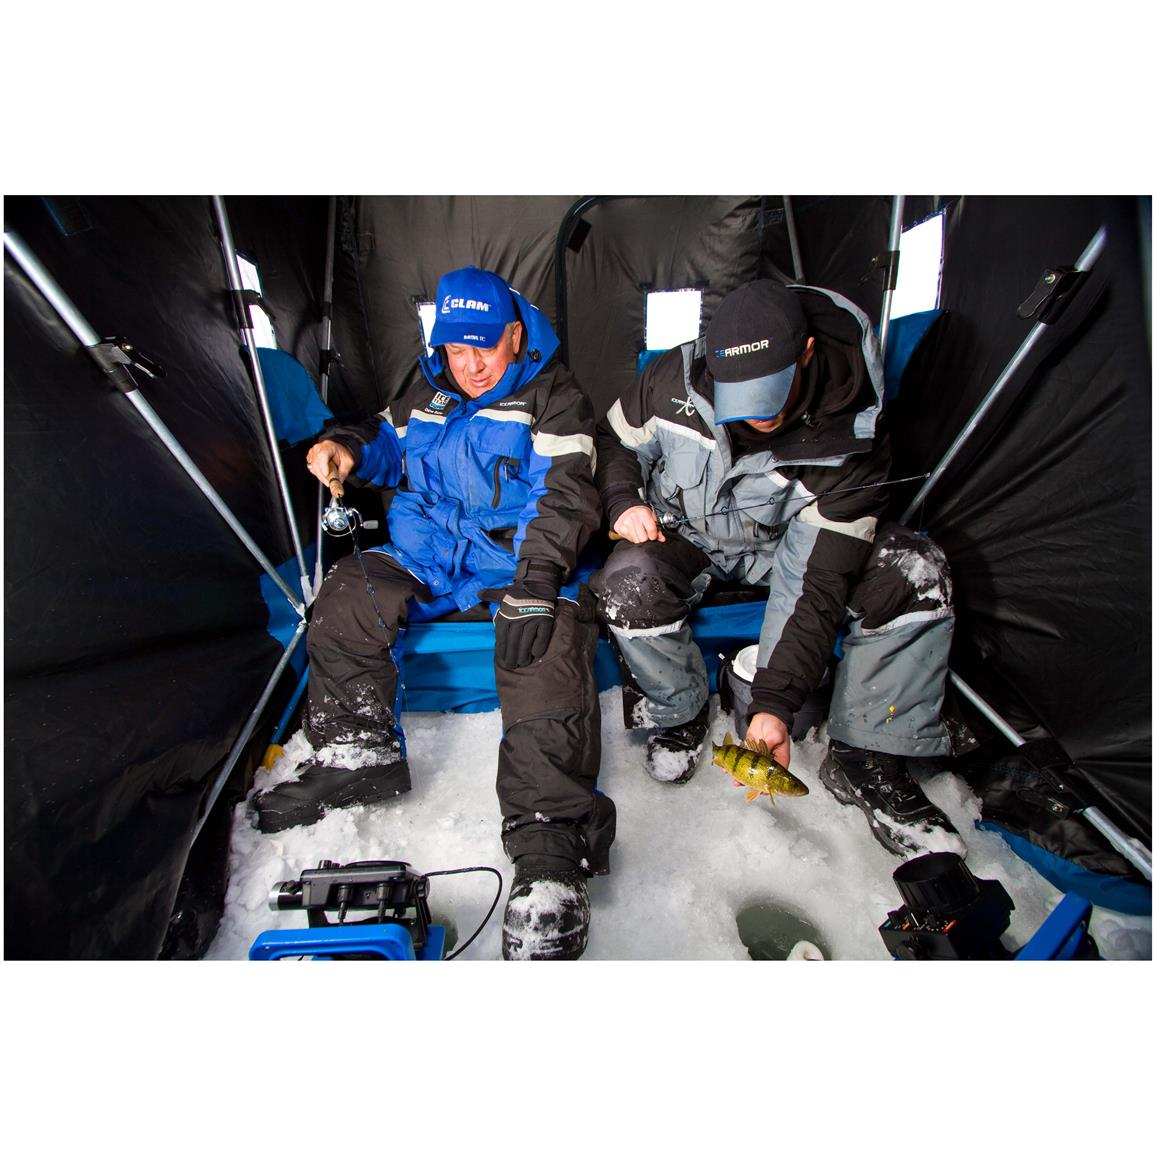 a guide to ice fishing Ice fishing is a unique experience that offers anglers a chance to fish on a lake or river without a boat during winter months it also give you a chance to enjoy time with your family and friends learn what type of fishing gear and equipment you need to start ice fishing this year.